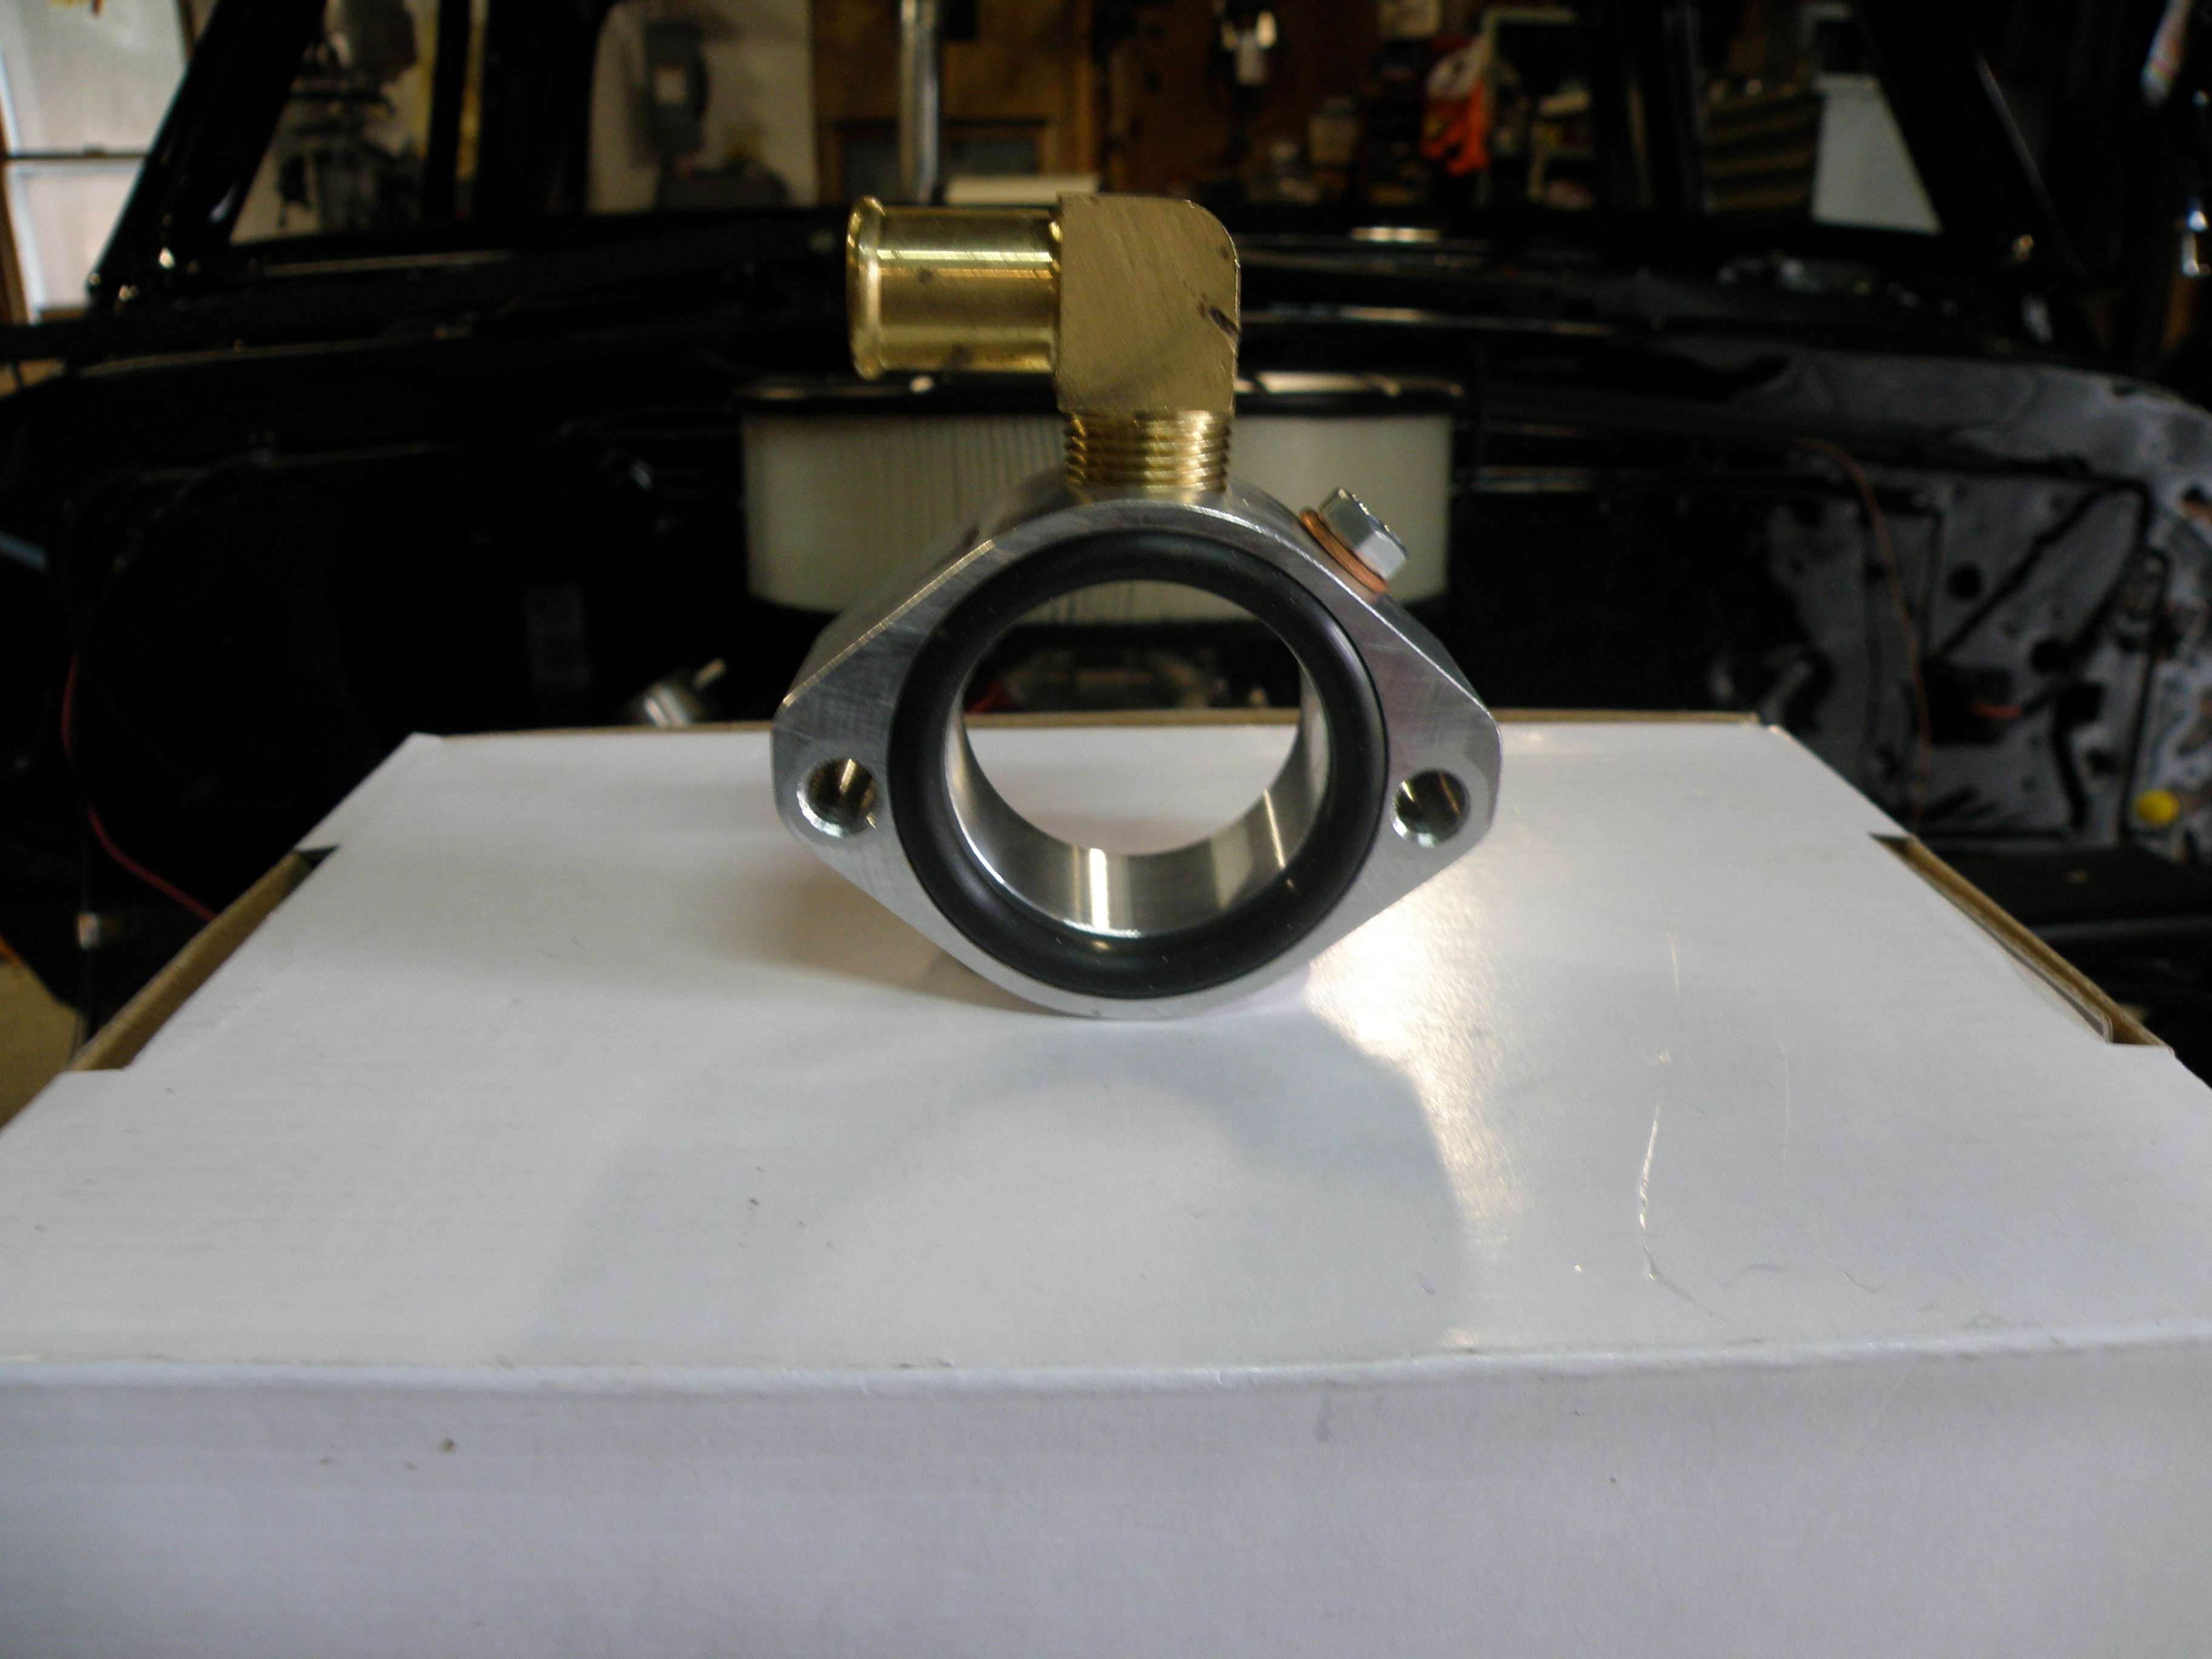 Polaris Side By Side >> Polaris Thermostat bypass heater adapter - Page 12